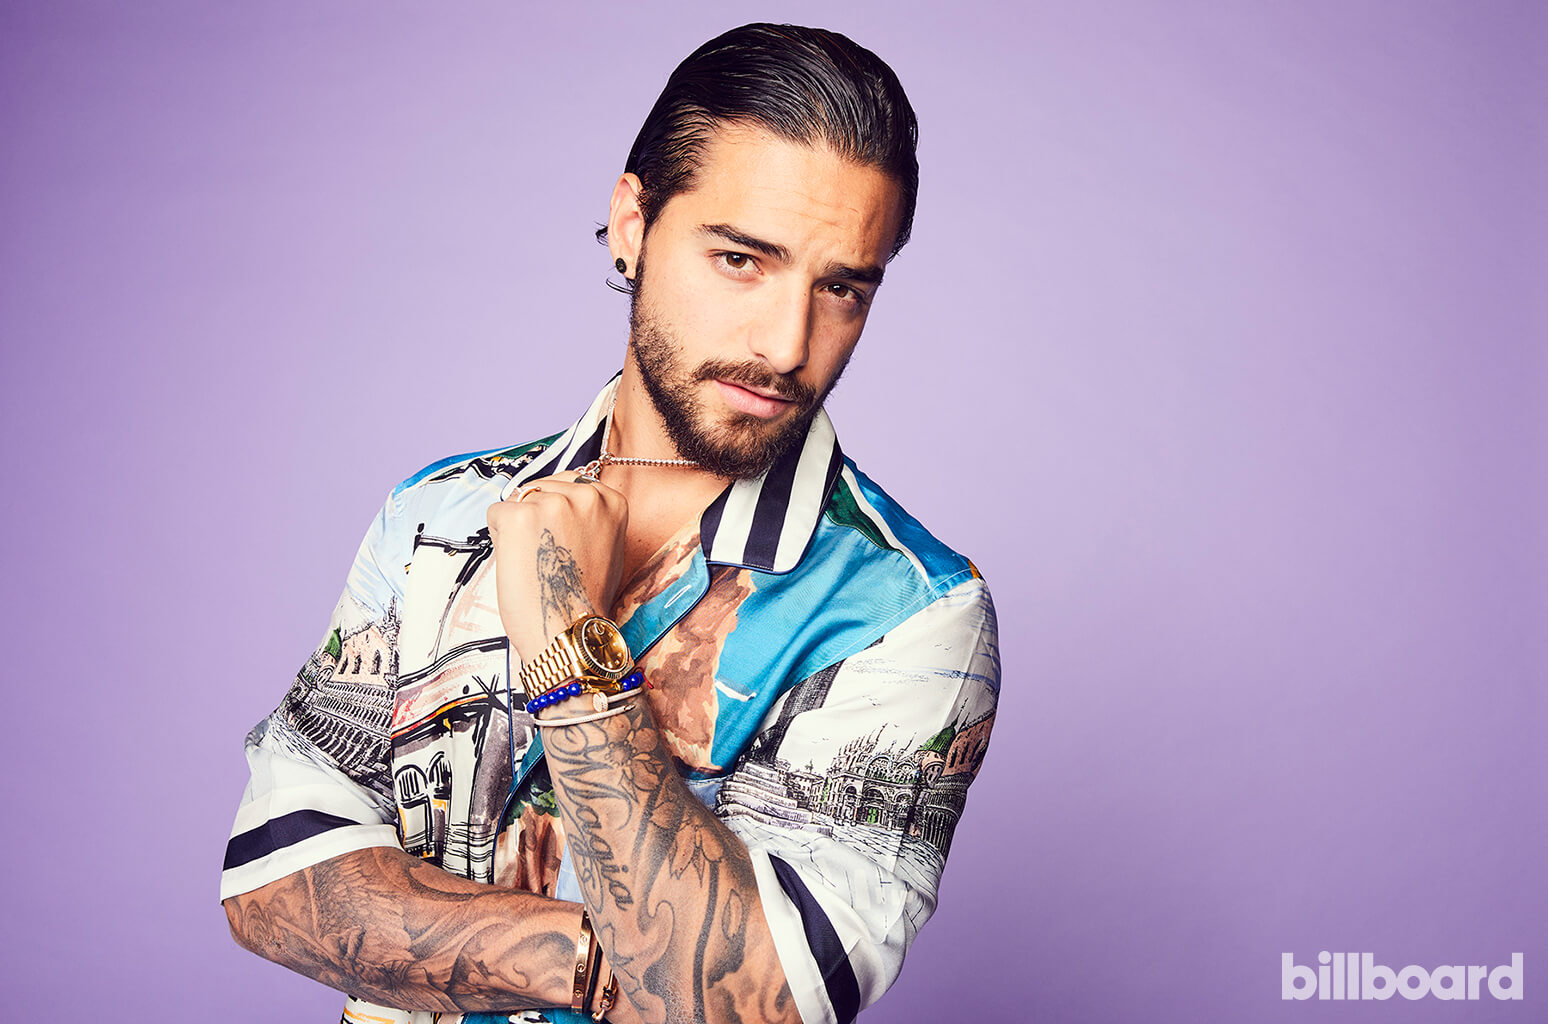 Maluma Biography - Wiki, Age, Family, Net Worth, Wife, Height, Songs & Pictures